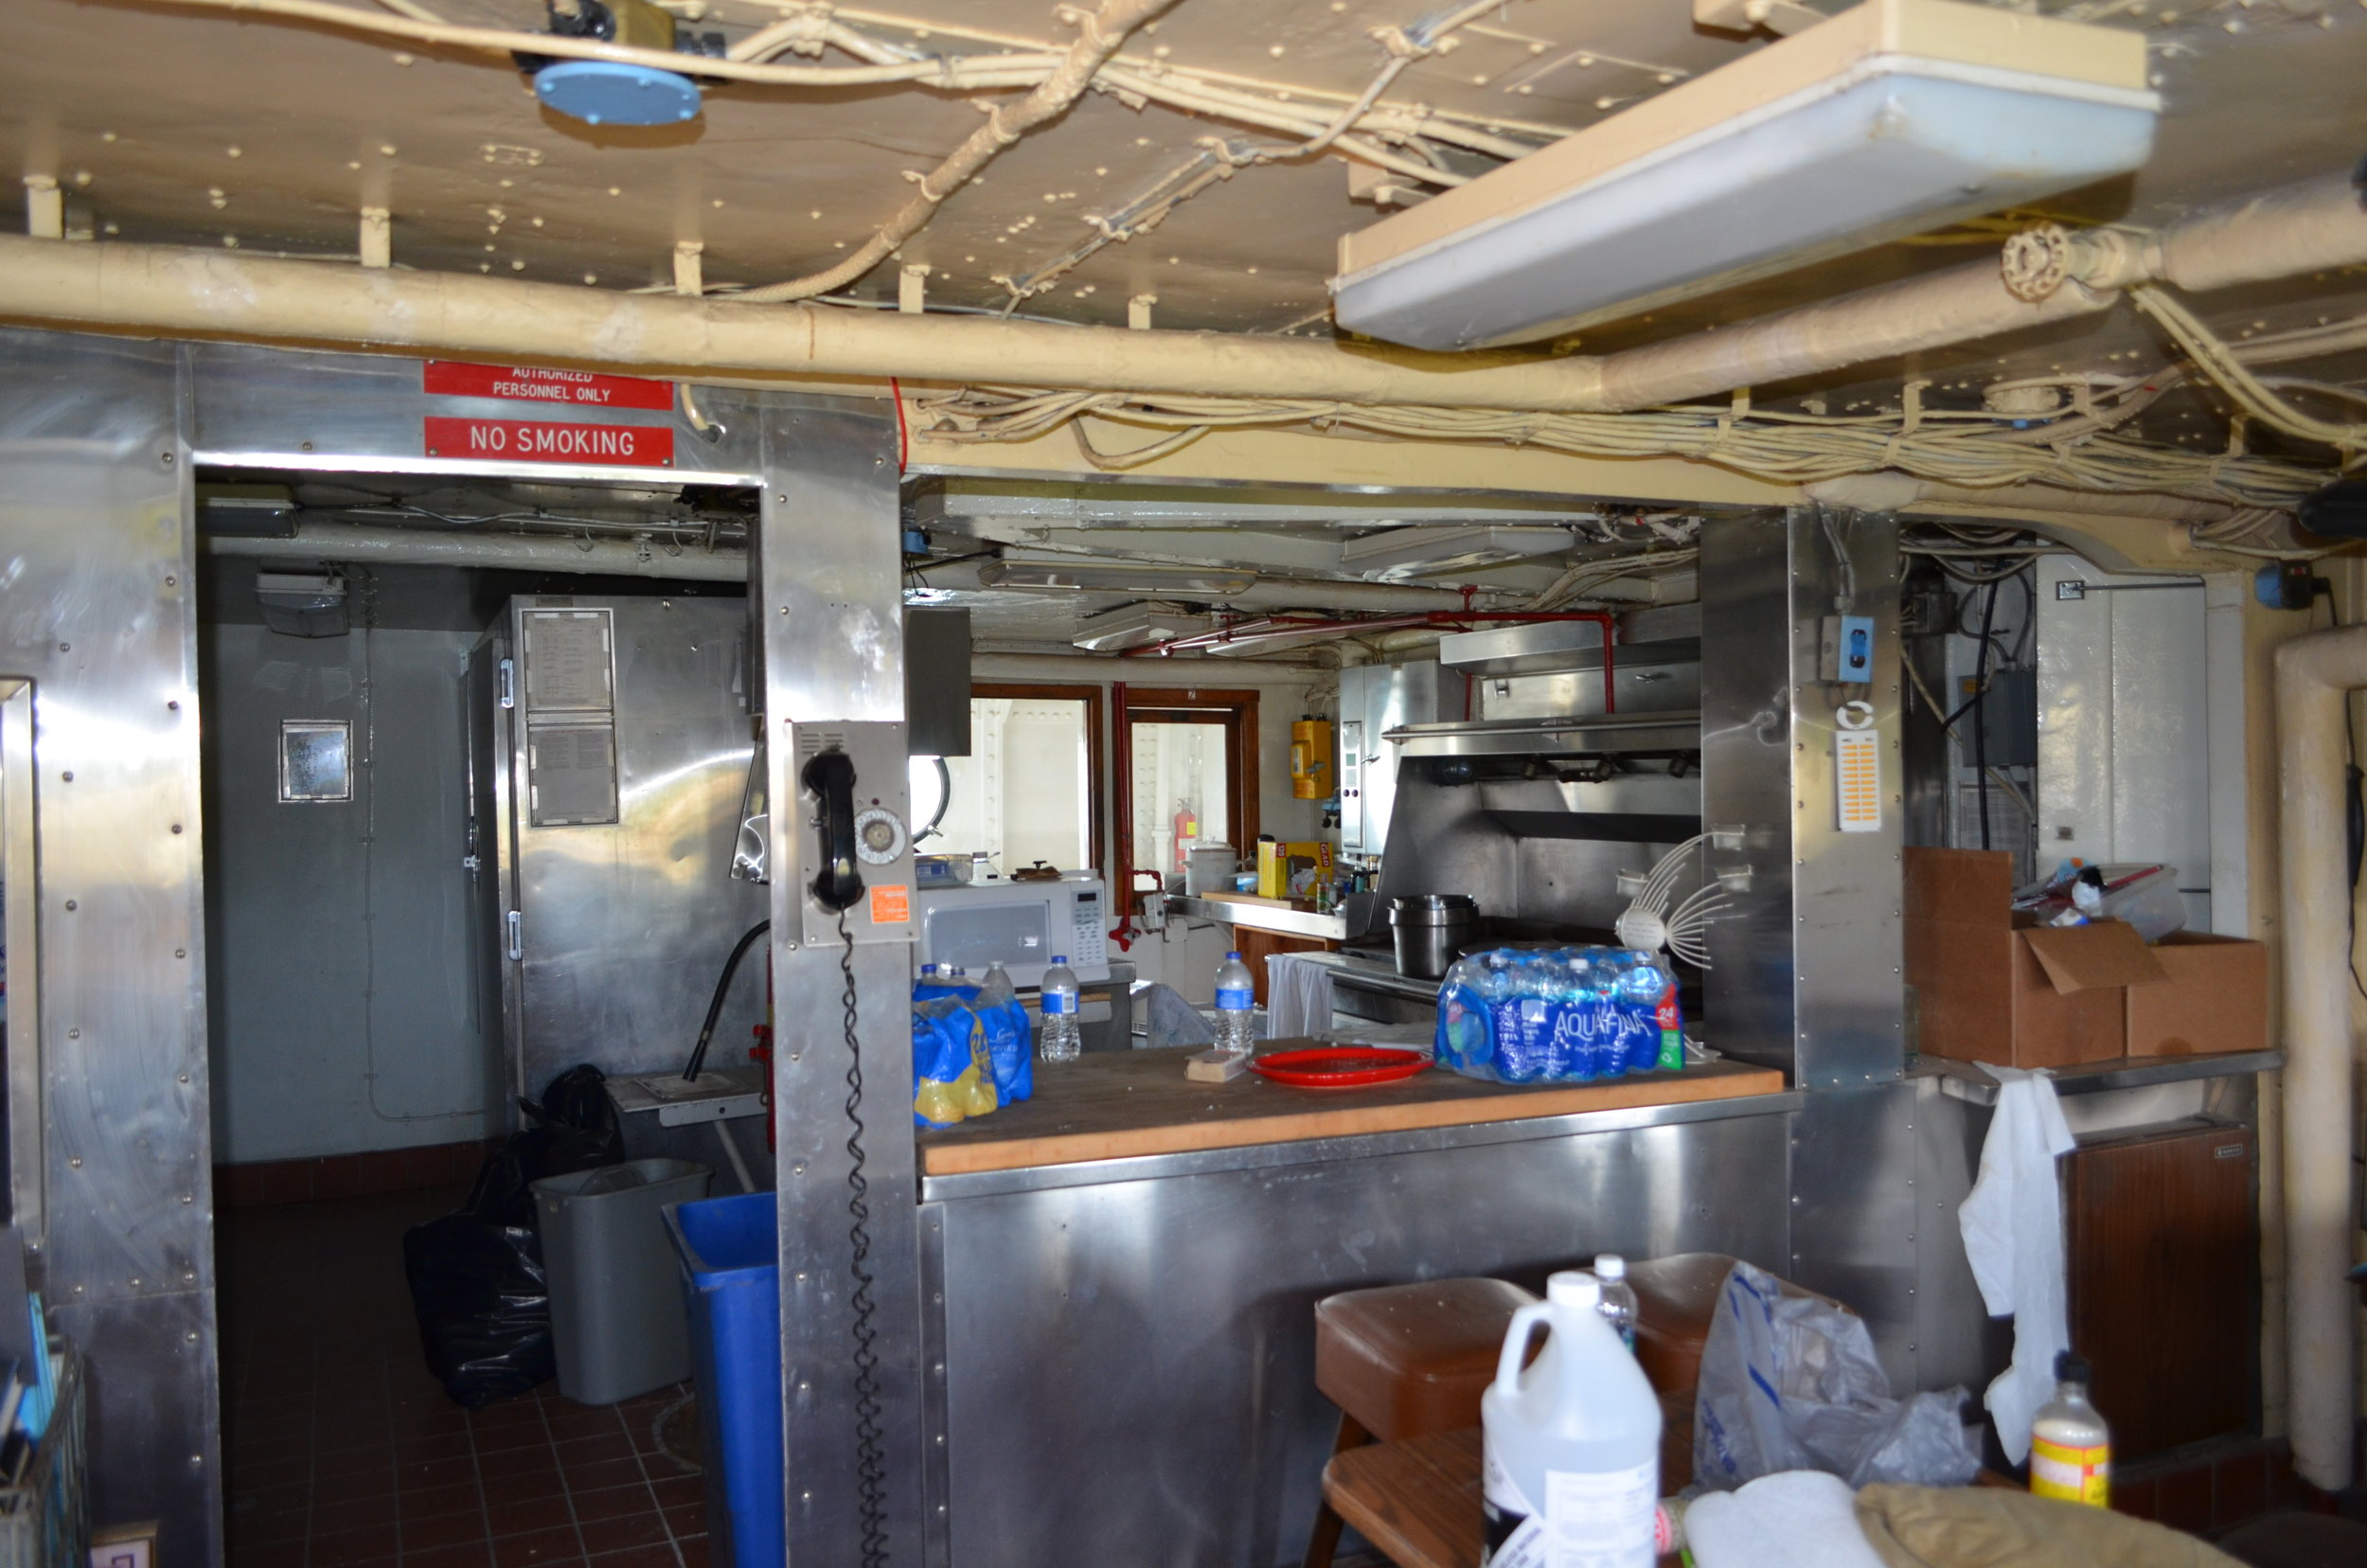 The refrigerator/freezer bank is to the far left. The stove/sinks are to the far right. A steam table in the center is where crew served themselves.